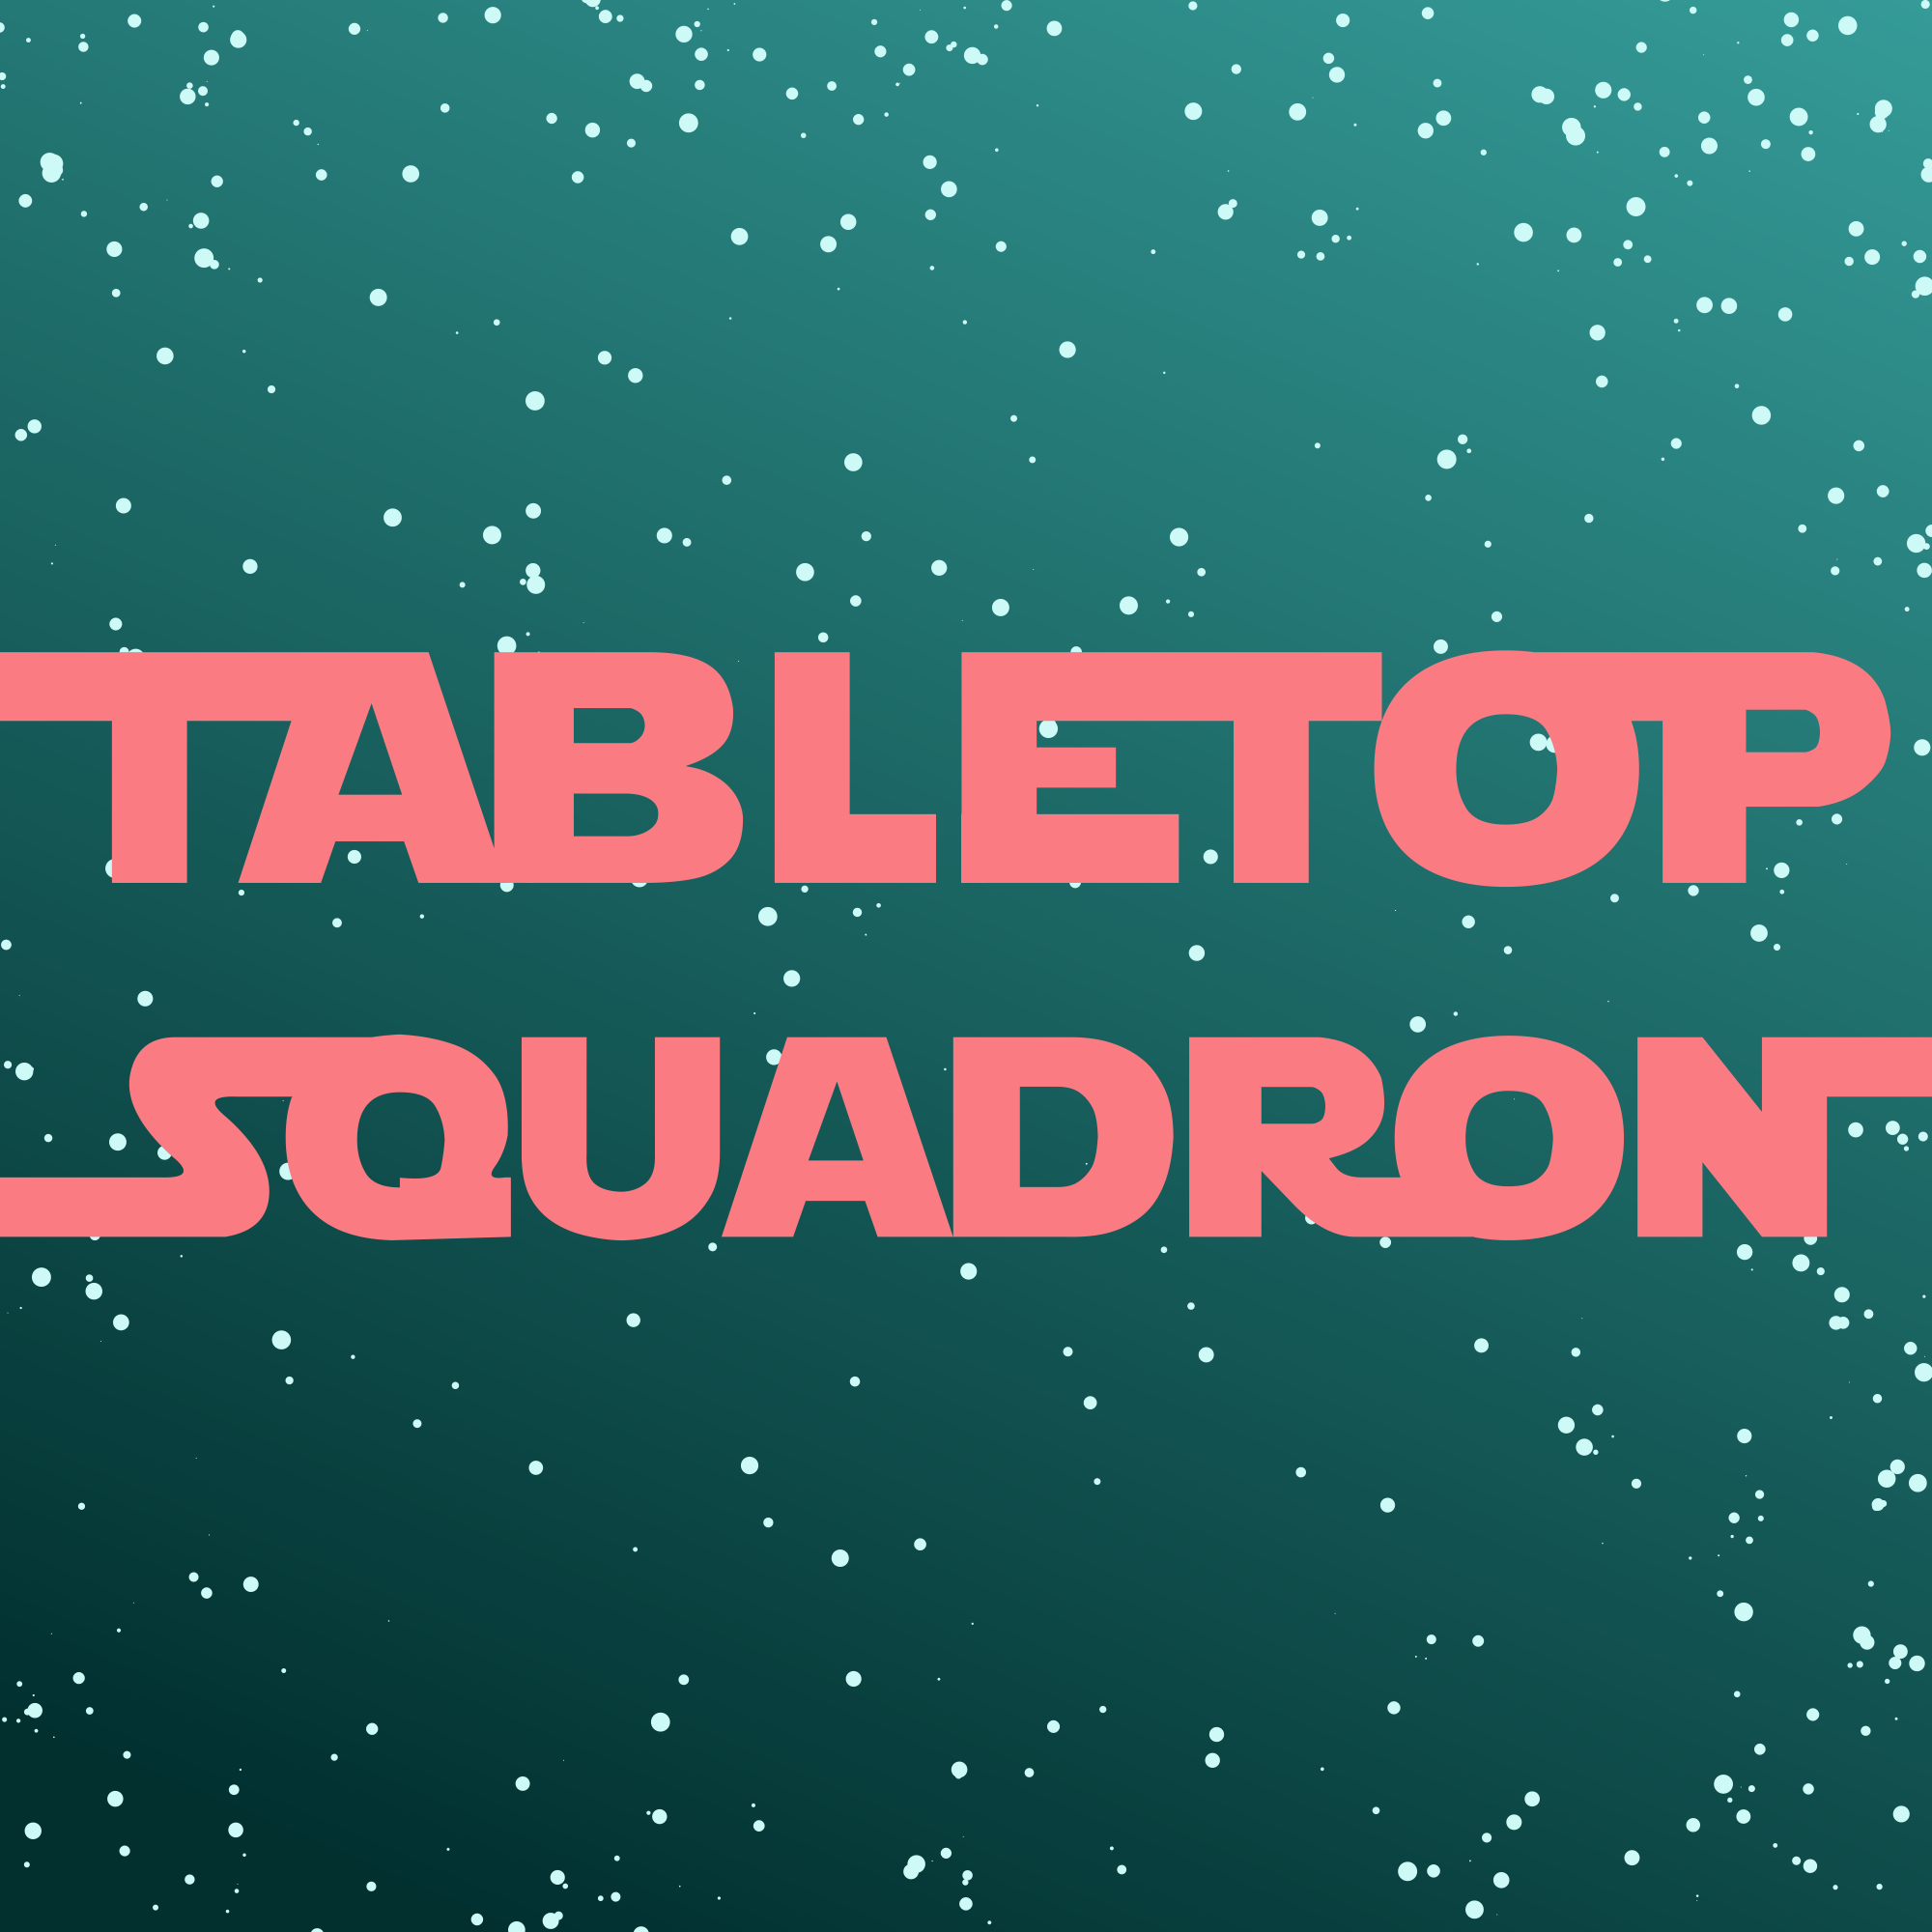 Tabletop Squadron show art